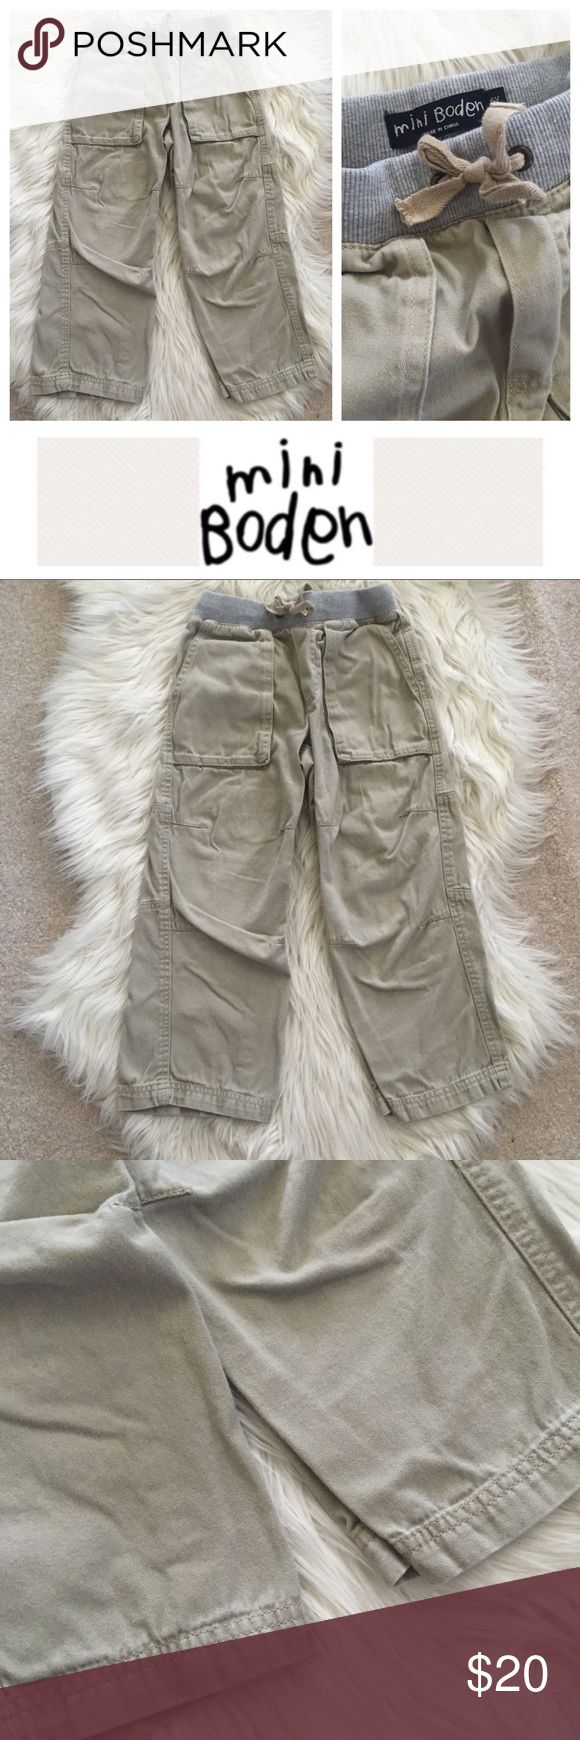 Mini Boden Cargo Pants Adorable used MB khaki cargo pants with gray waistband. Size 6. Bundle to save even more -- I have tons of kids clothes! Hope you enjoy 😘 Mini Boden Bottoms